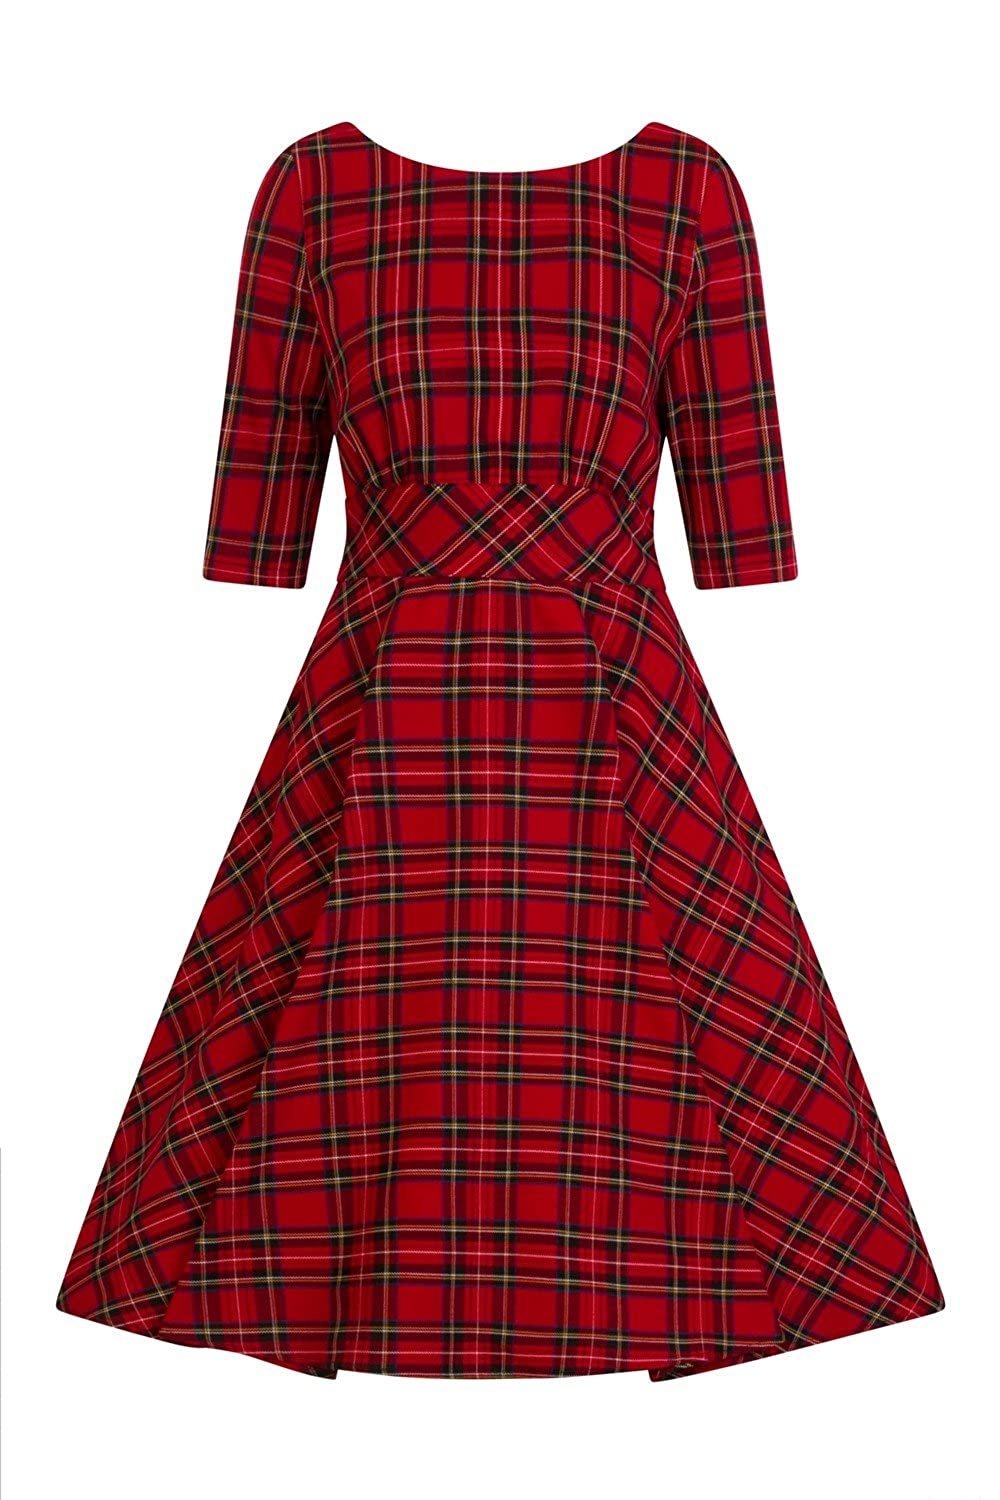 500 Vintage Style Dresses for Sale | Vintage Inspired Dresses Hell Bunny Irvine Tartan 1950s Vintage Retro Dress XS-4XL $72.99 AT vintagedancer.com